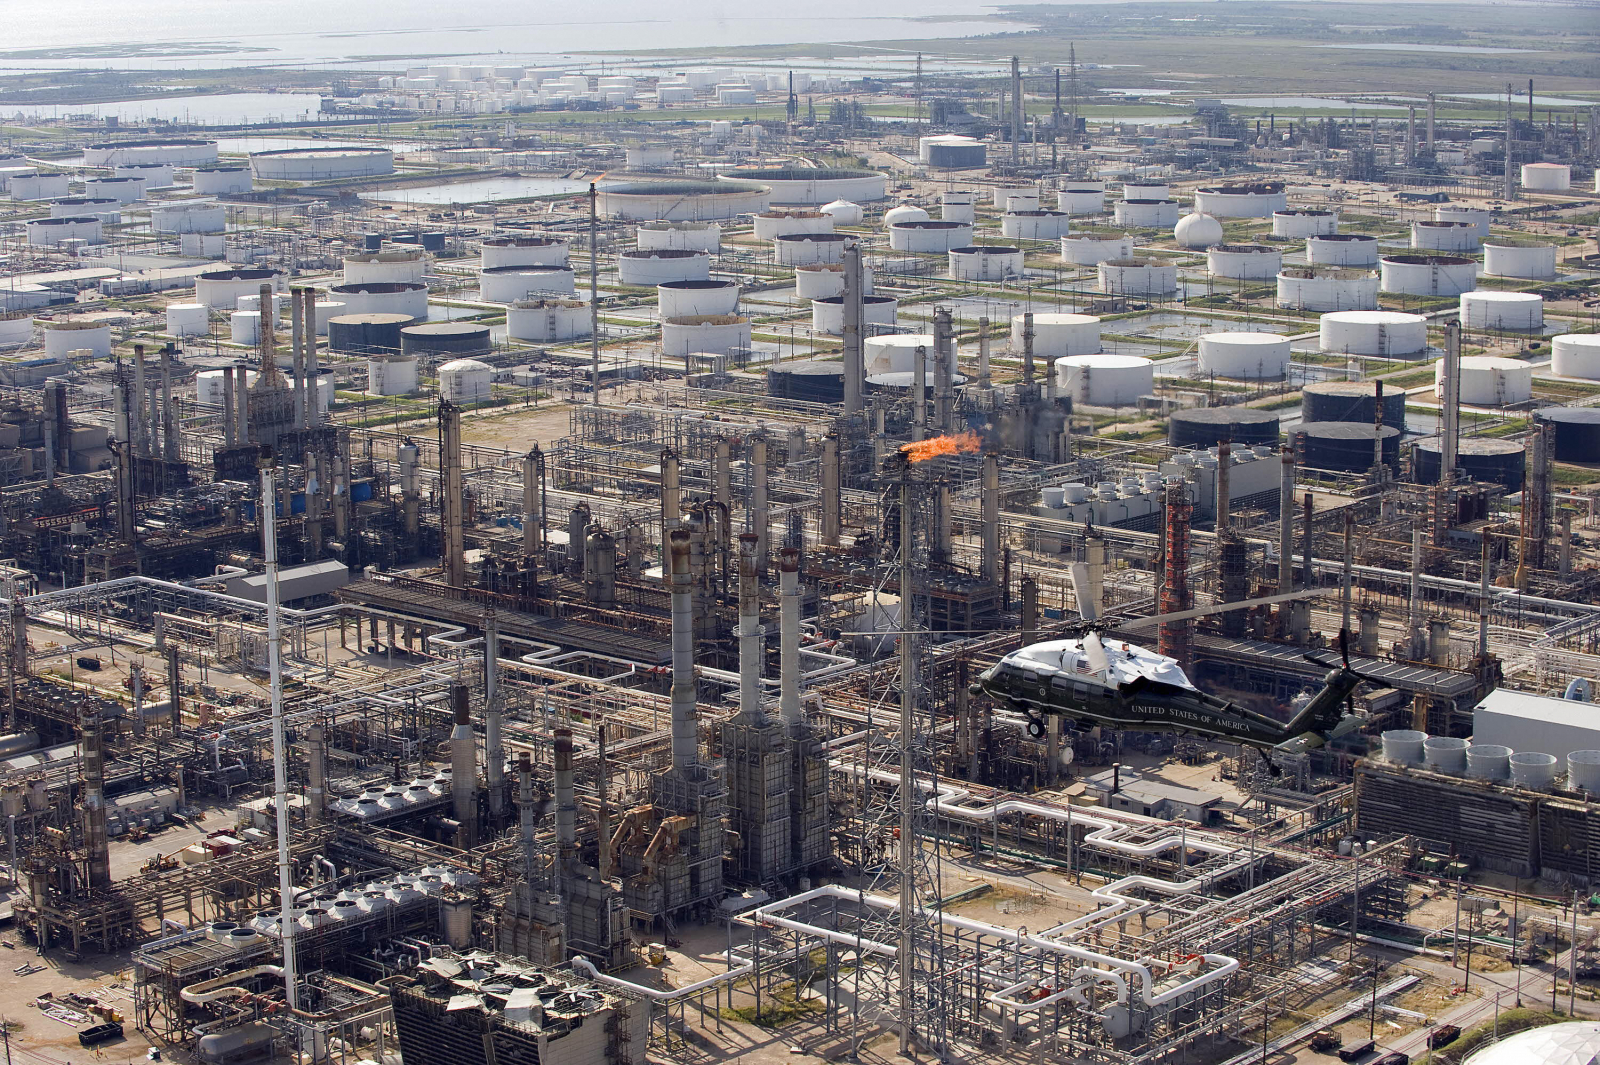 Oil refinery in Texas City, Texas